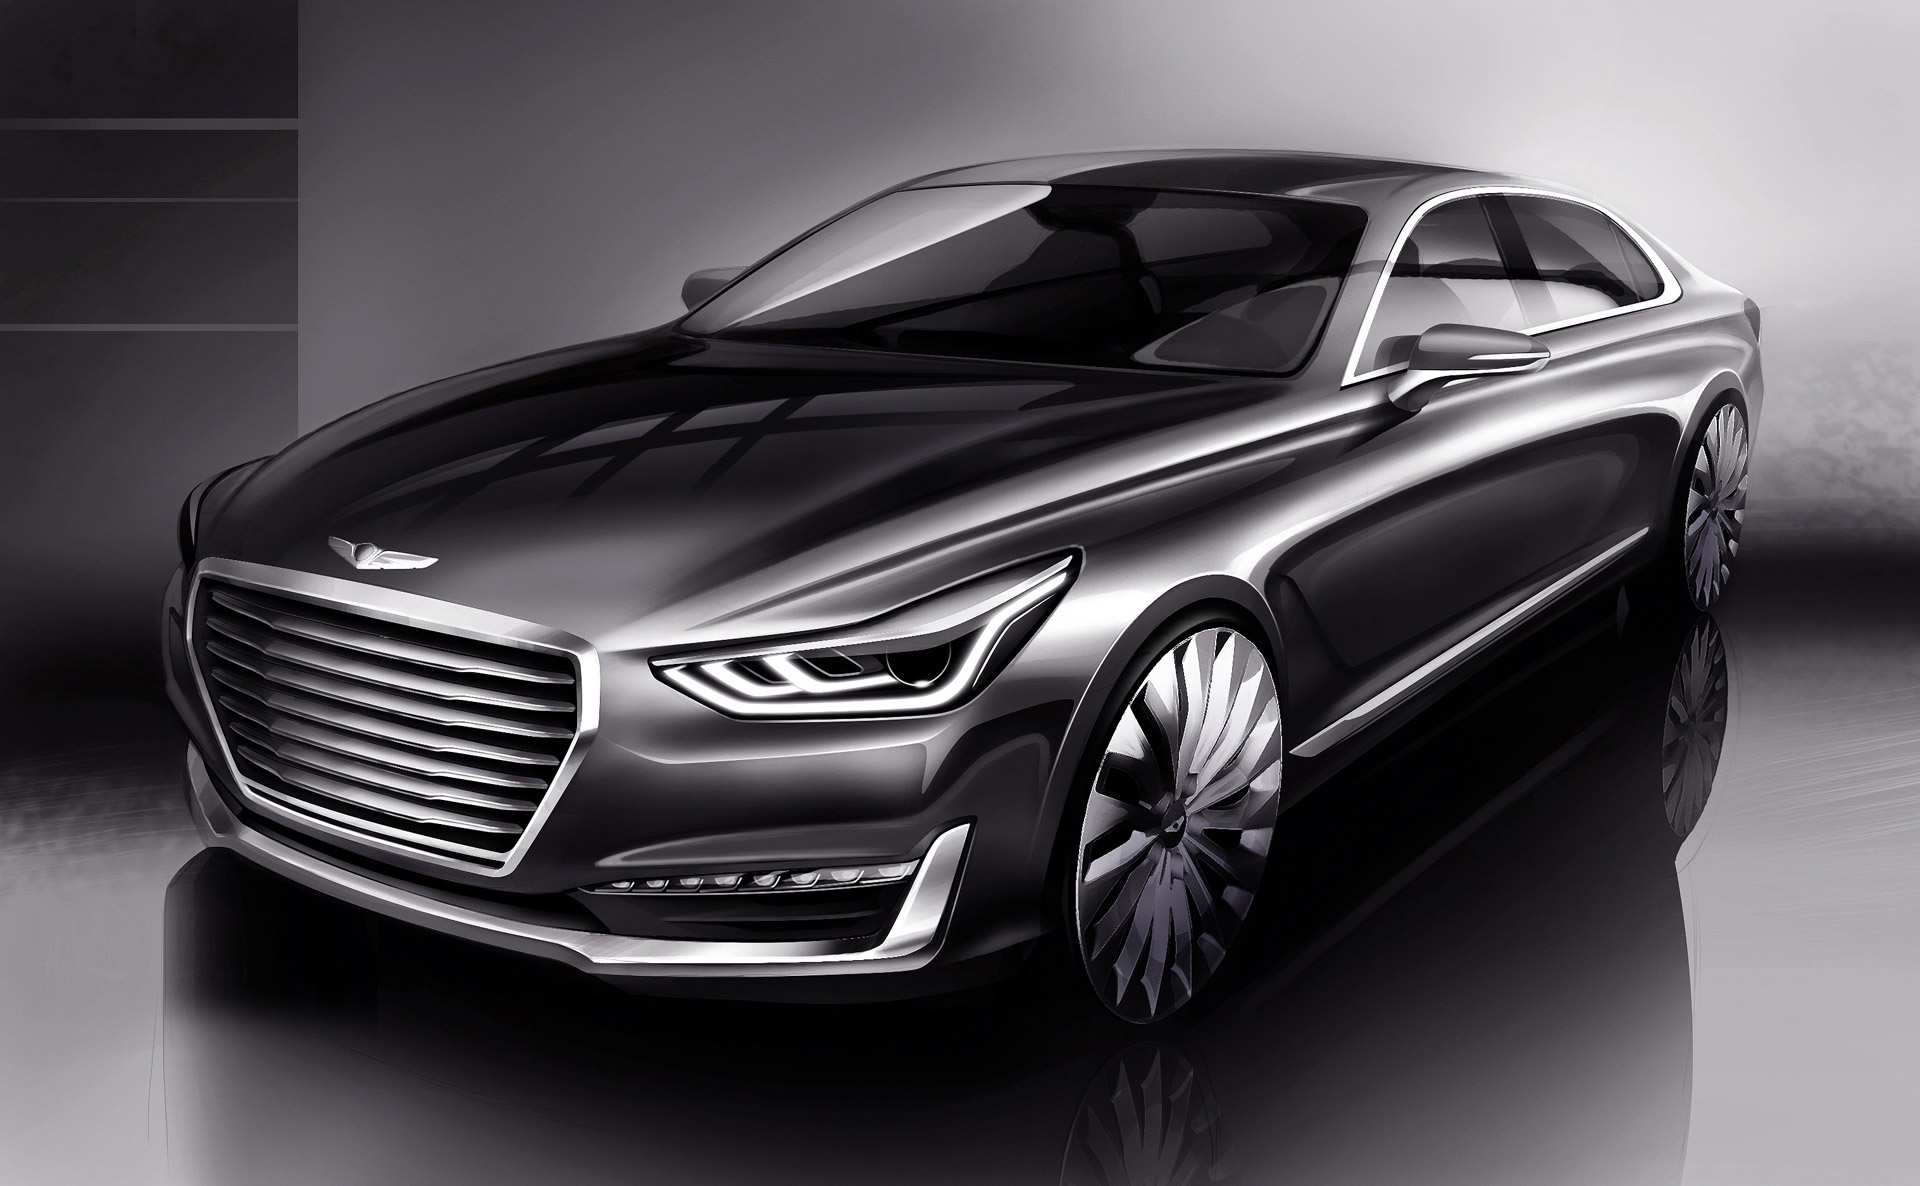 74 New 2019 Hyundai Equus Engine